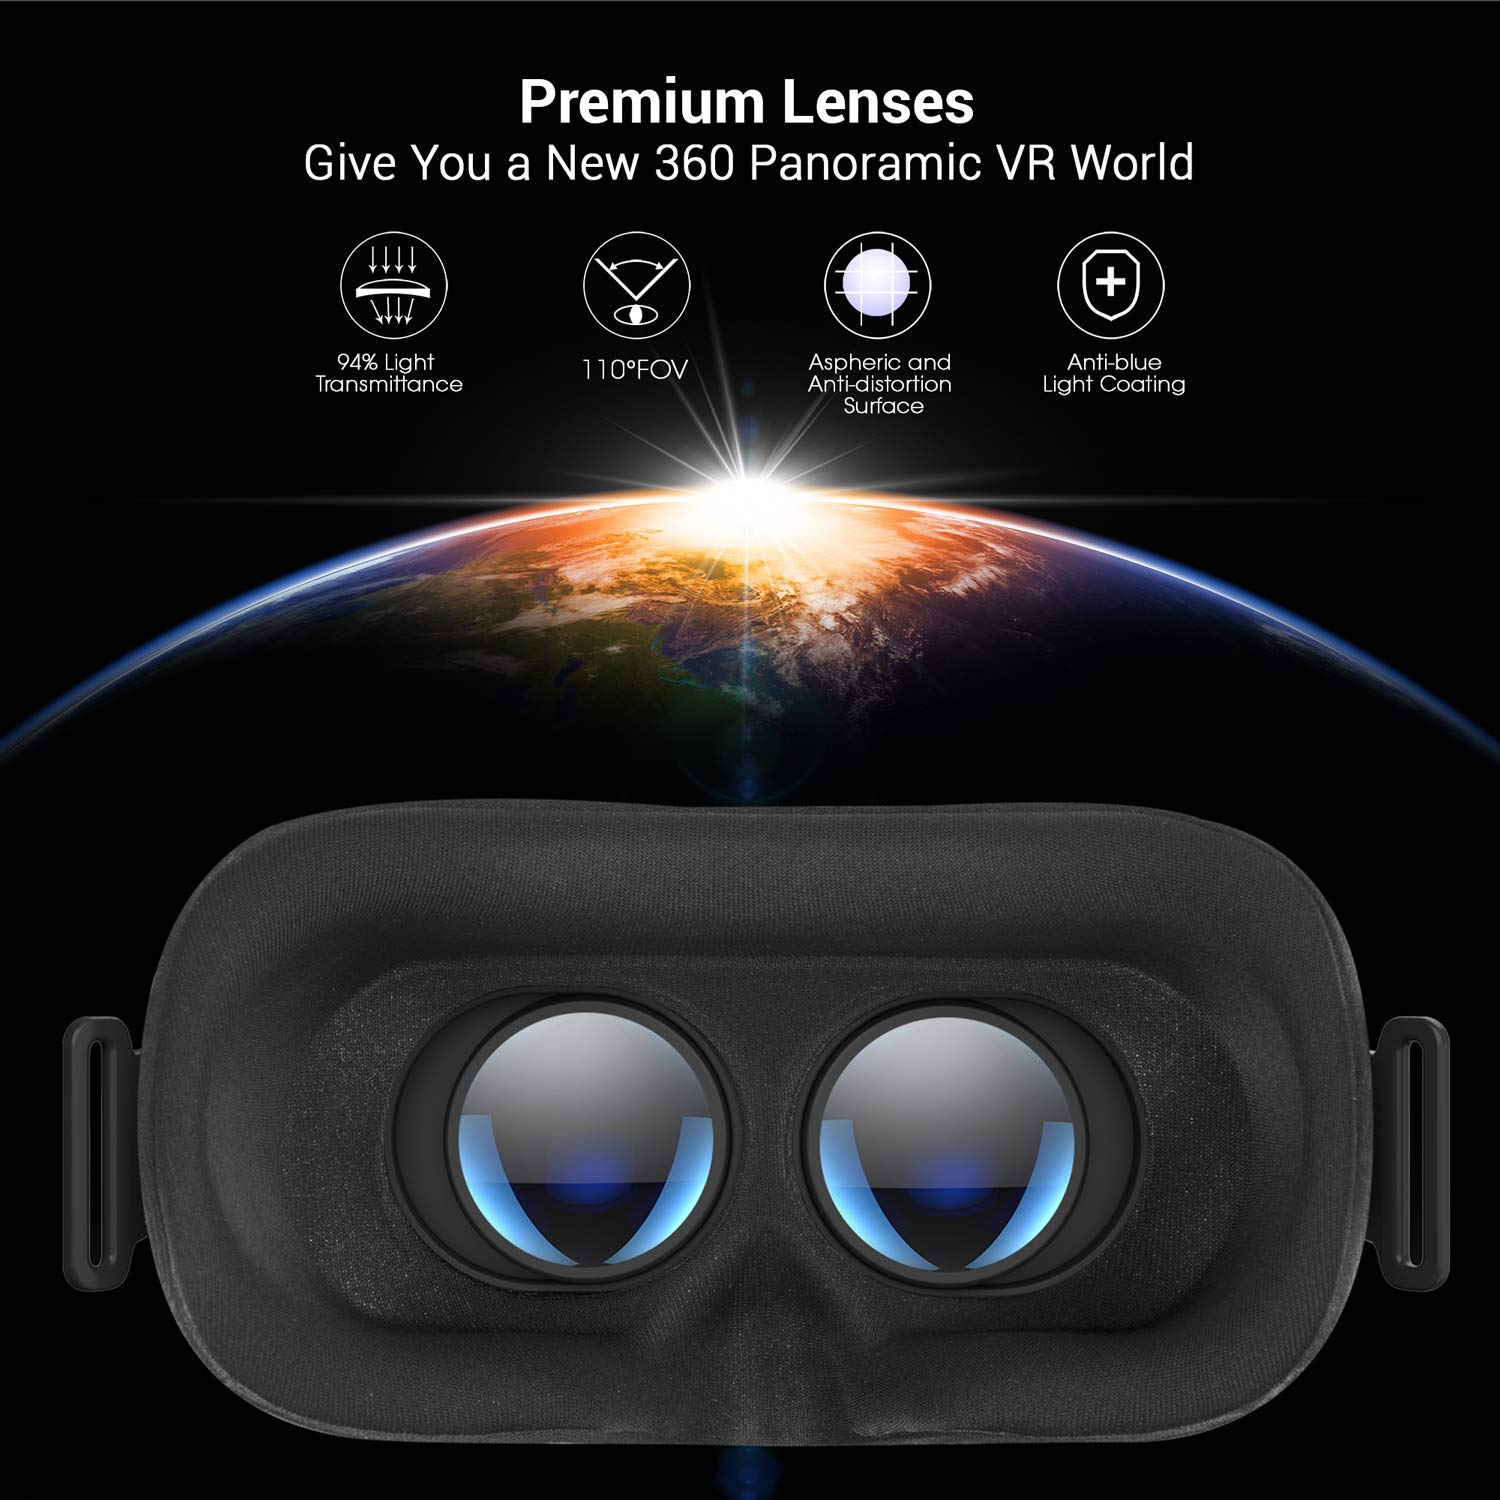 Smartphones W 5 5 6 5in Screen 110 Fov Eye Protected Hd Virtual Reality Headset W Touch Button Trigger For Iphone 11 Xs Max X 8 7 6 Plus Destek V5 Vr Headset For Samsung S10 Plus S9 S8